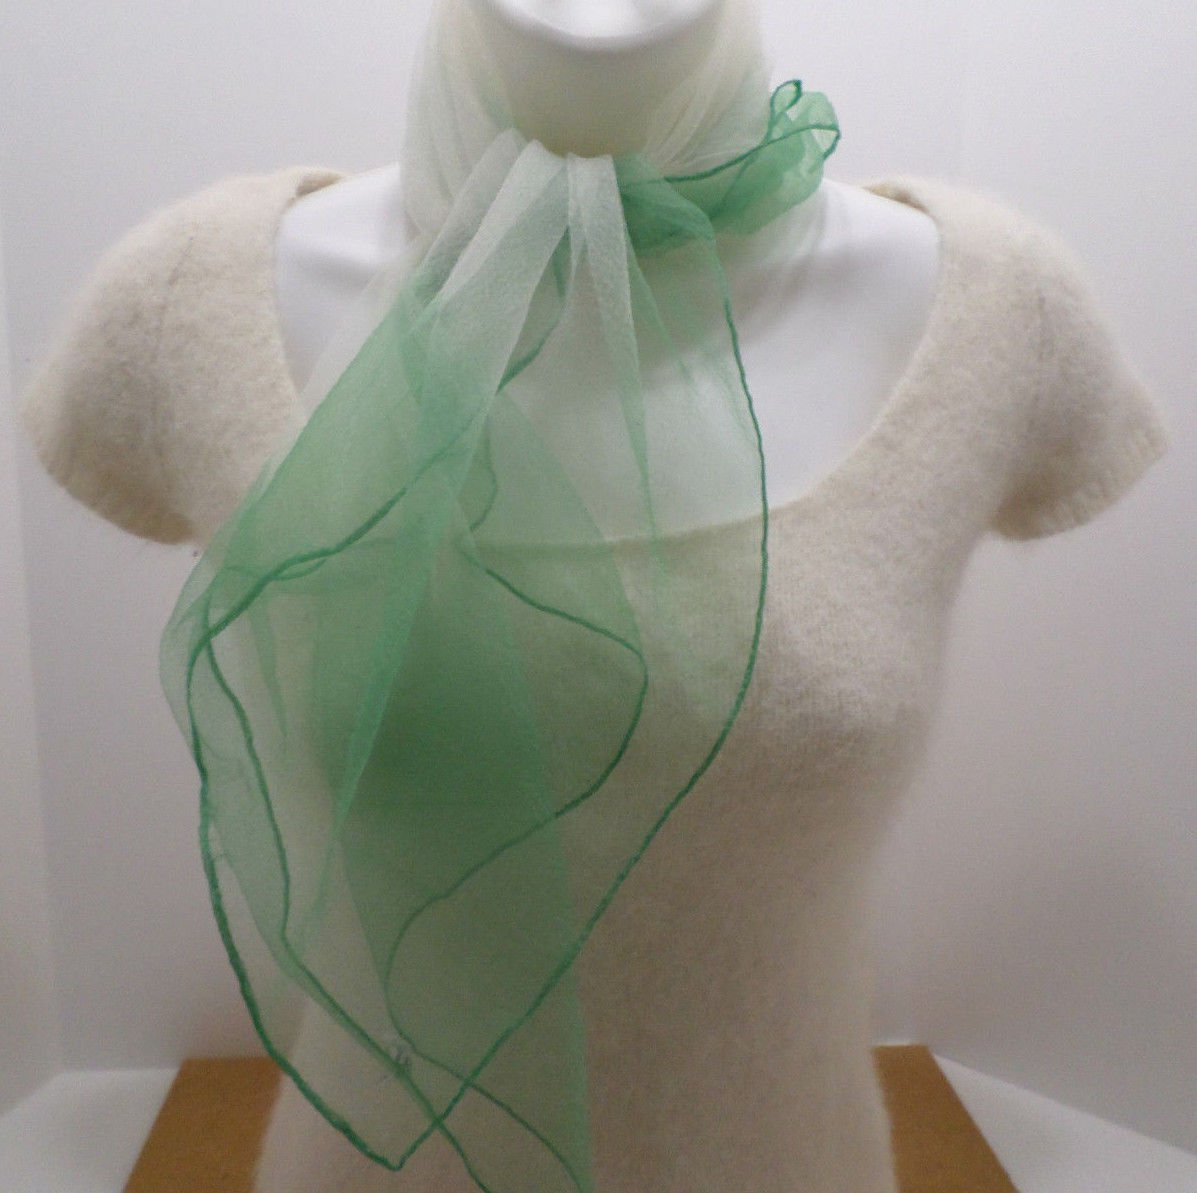 Vintage Green White Scarf 100% Nylon Made in Japan 27 x 26 WPL10360